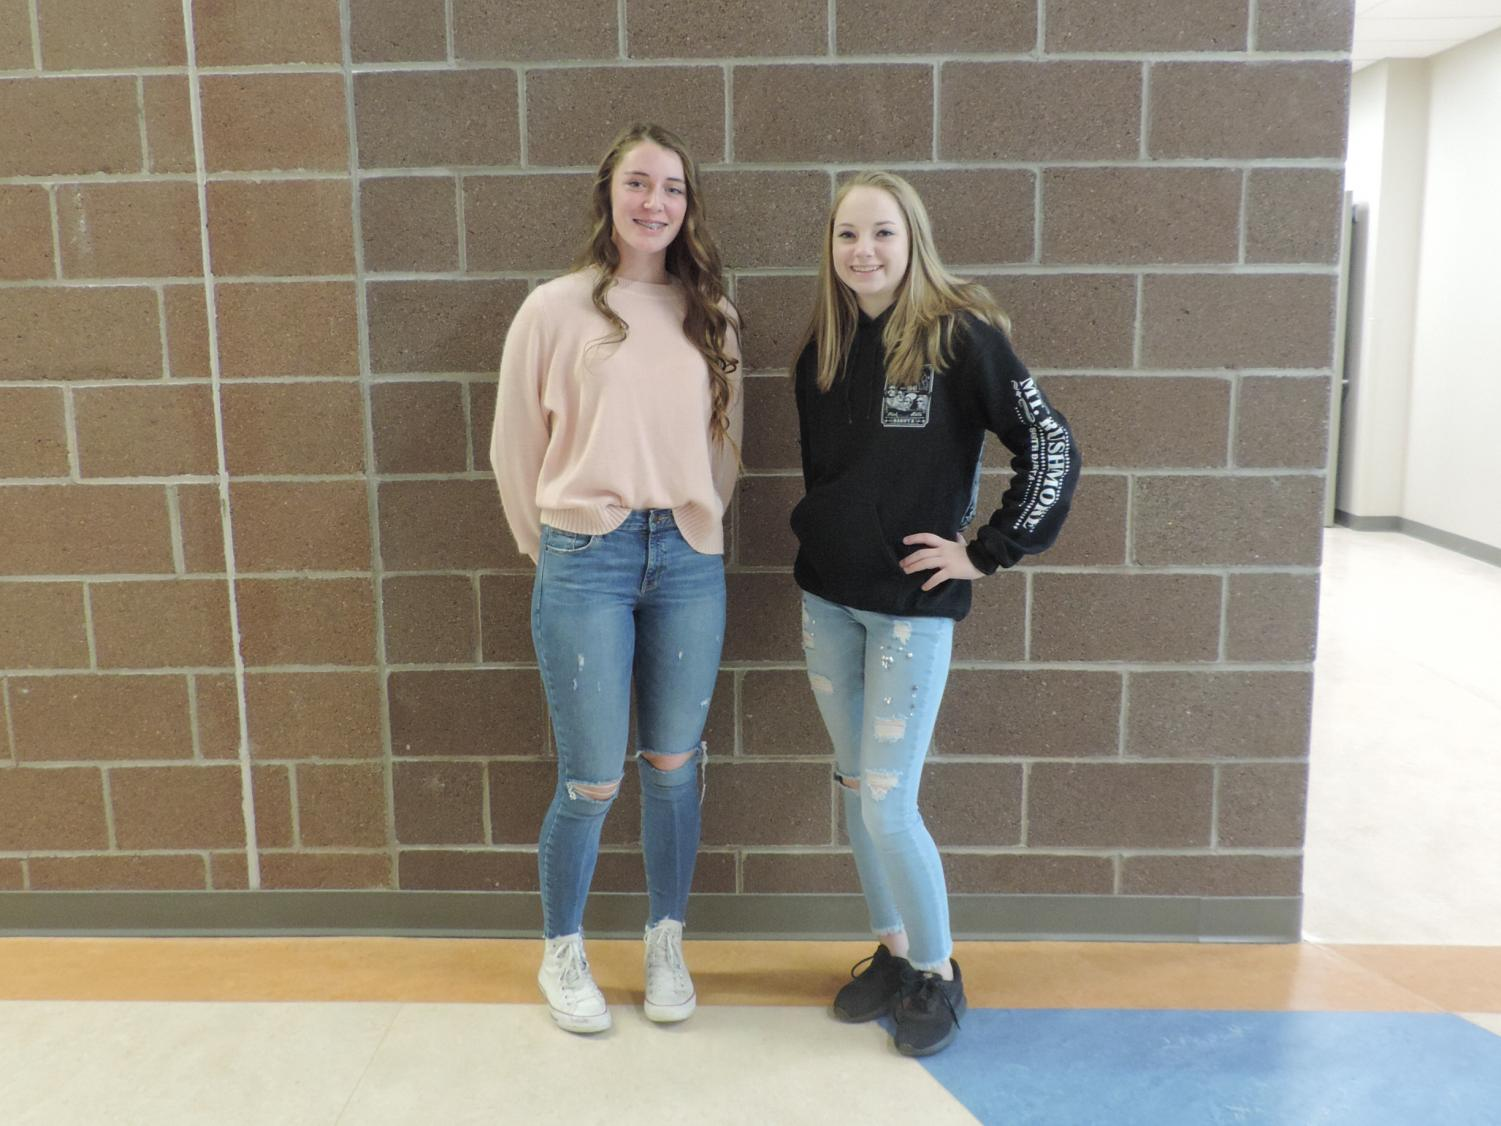 Sophomores Briahna Davis and Savanna Griebling are excited for the new basketball season.